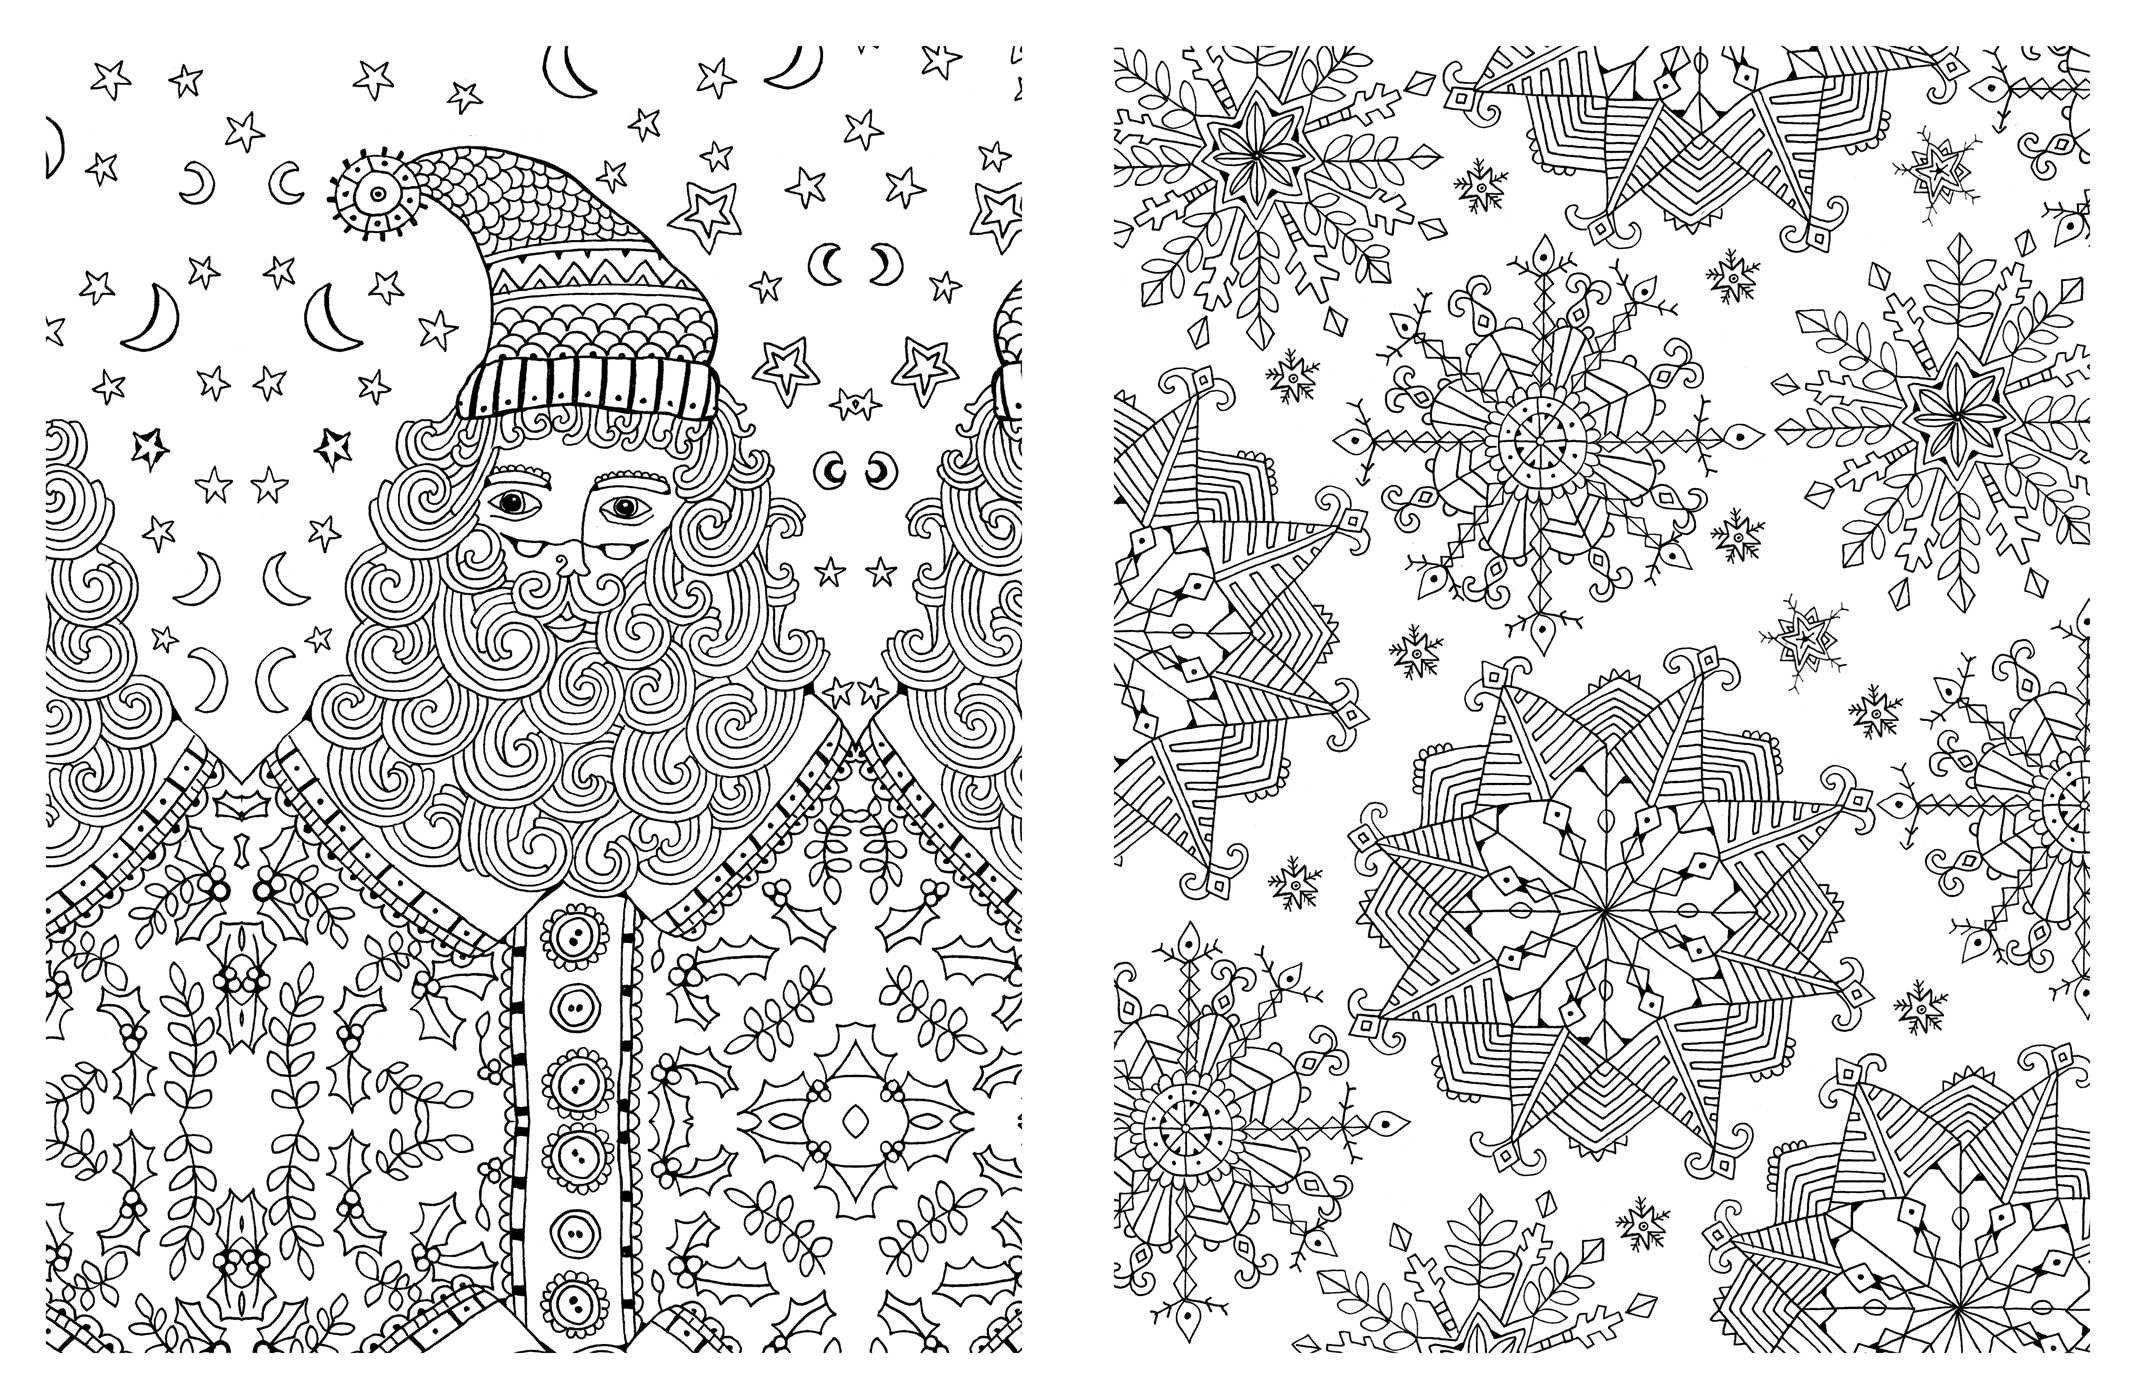 91bt6y2tudl Jpg 2136 1399 Christmas Coloring Pages Christmas Coloring Books Coloring Pages Inspirational